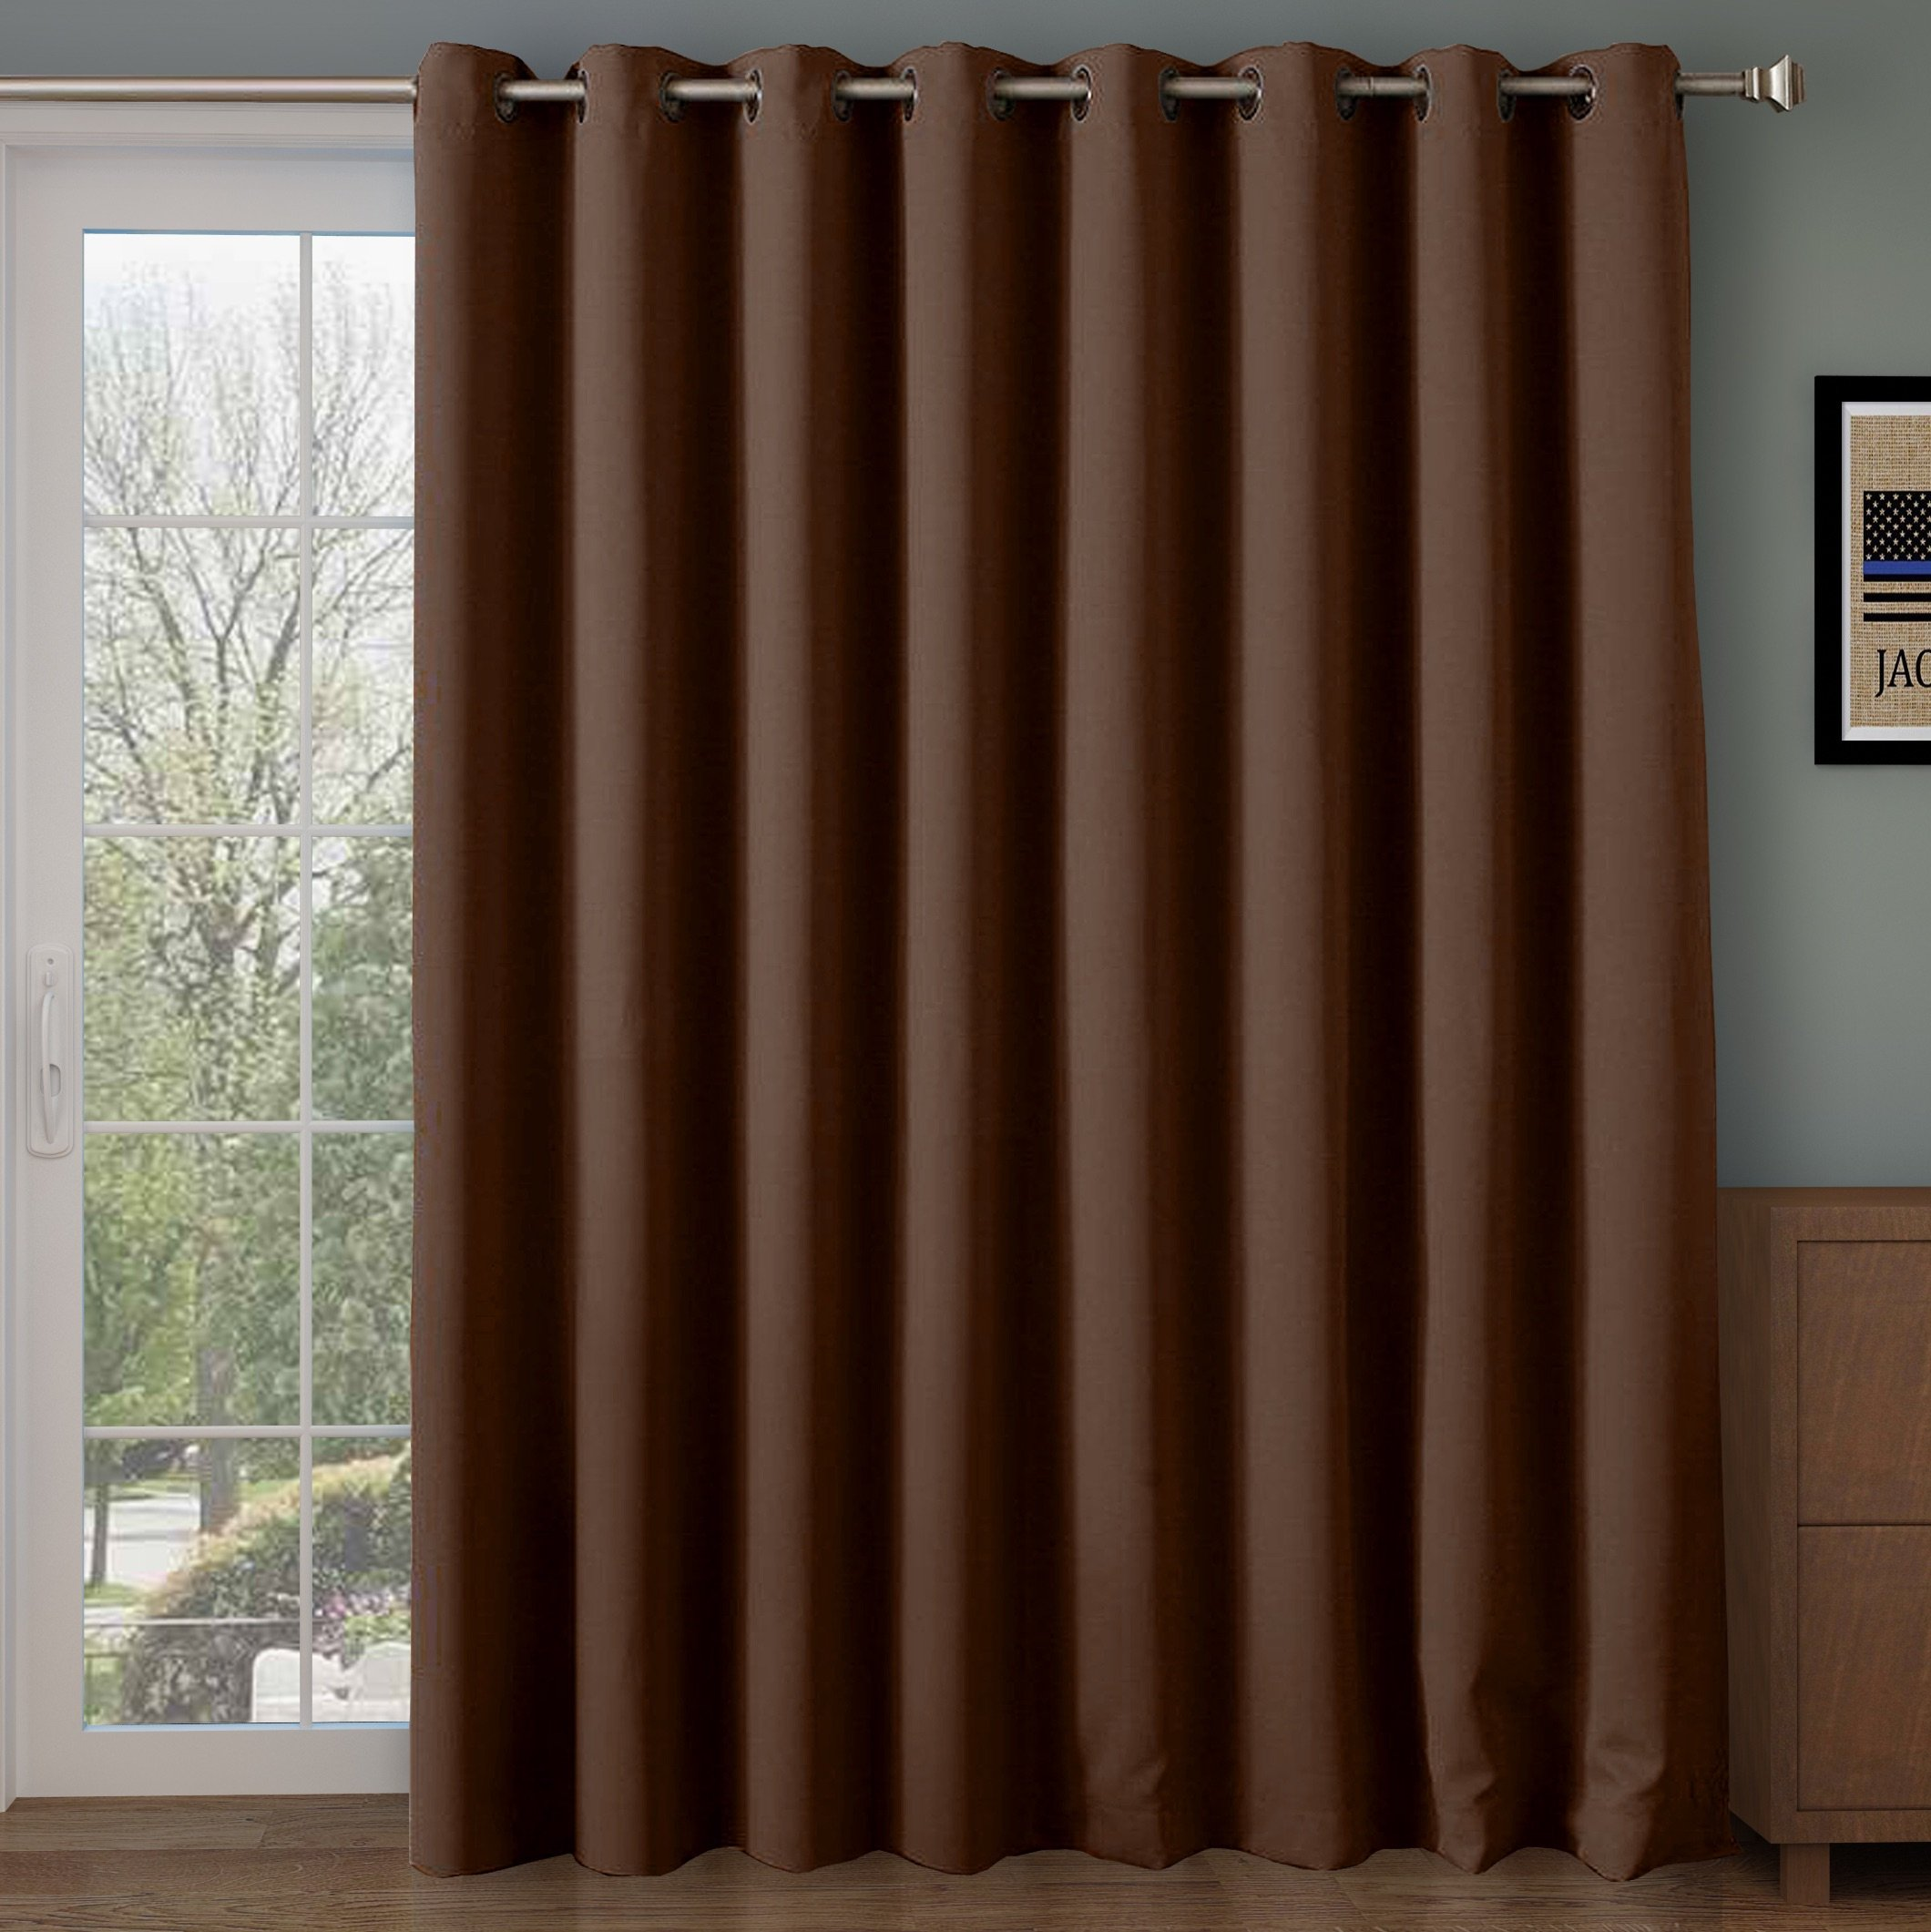 Sliding Blinds: Amazon.com